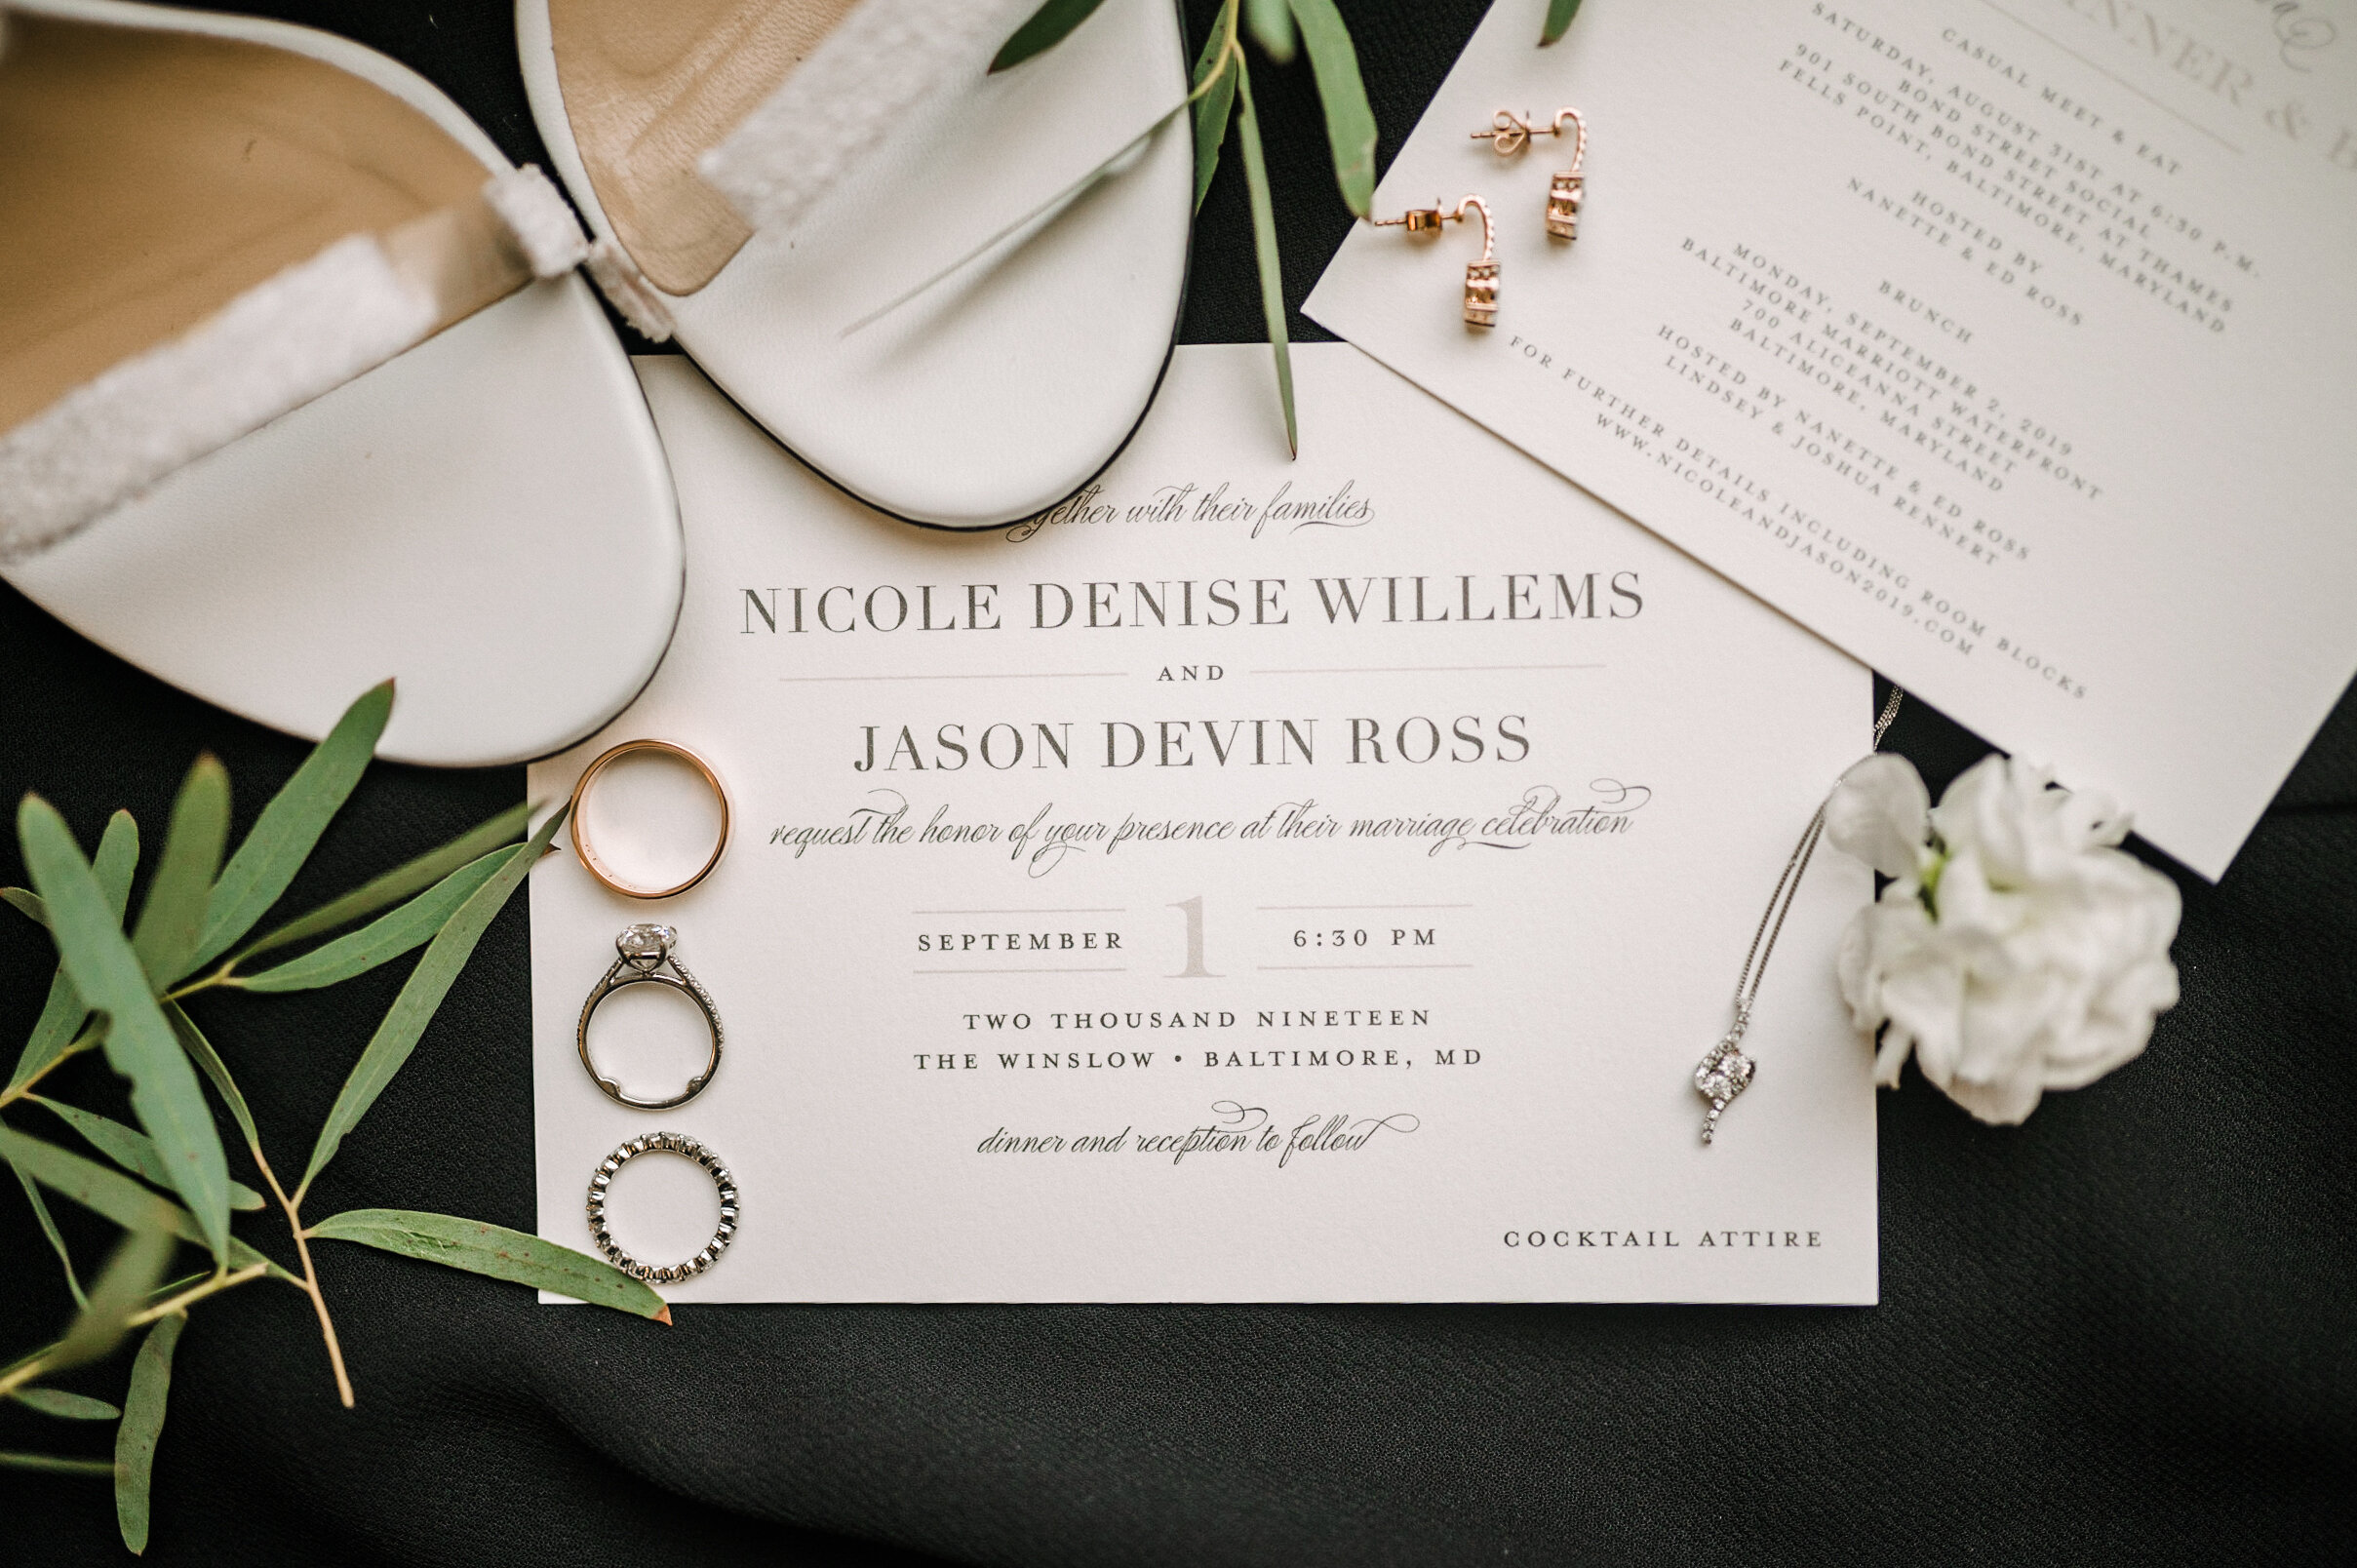 Bridal Details at The Winslow